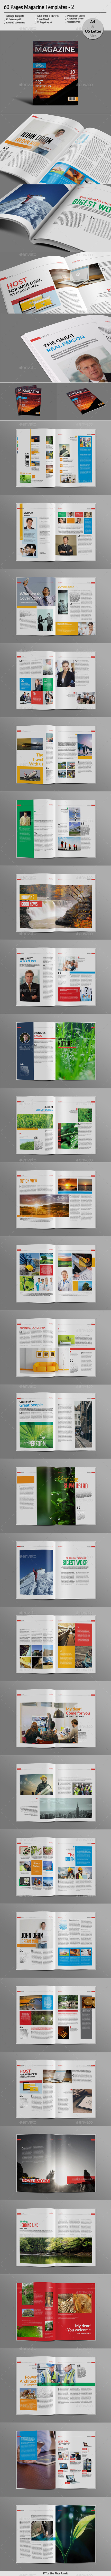 60 Pages Magazine Templates - 2 - Magazines Print Templates